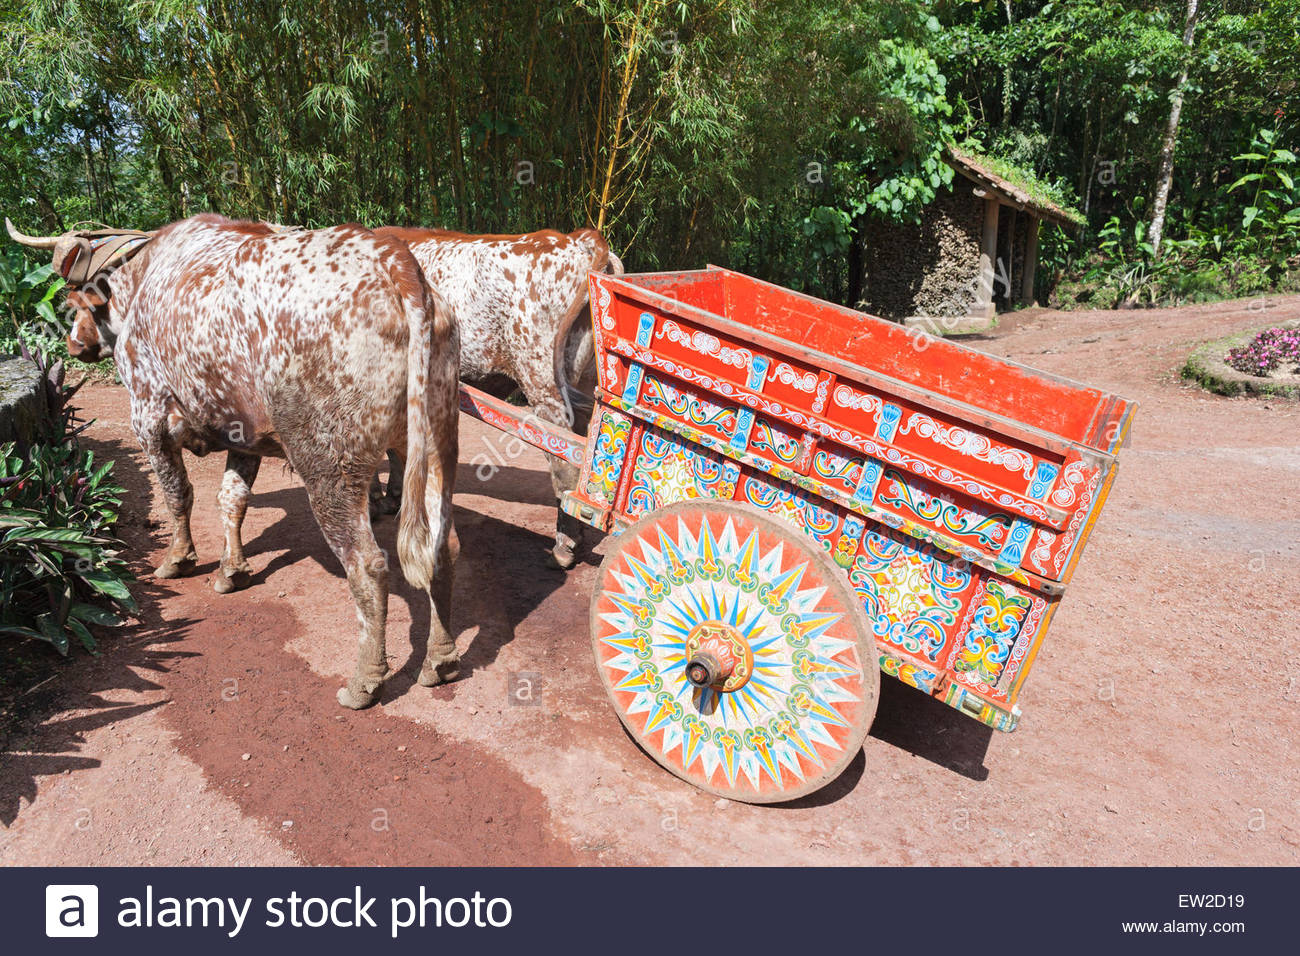 Decorative ox-cart, Costa Rica, Central America - Stock Image